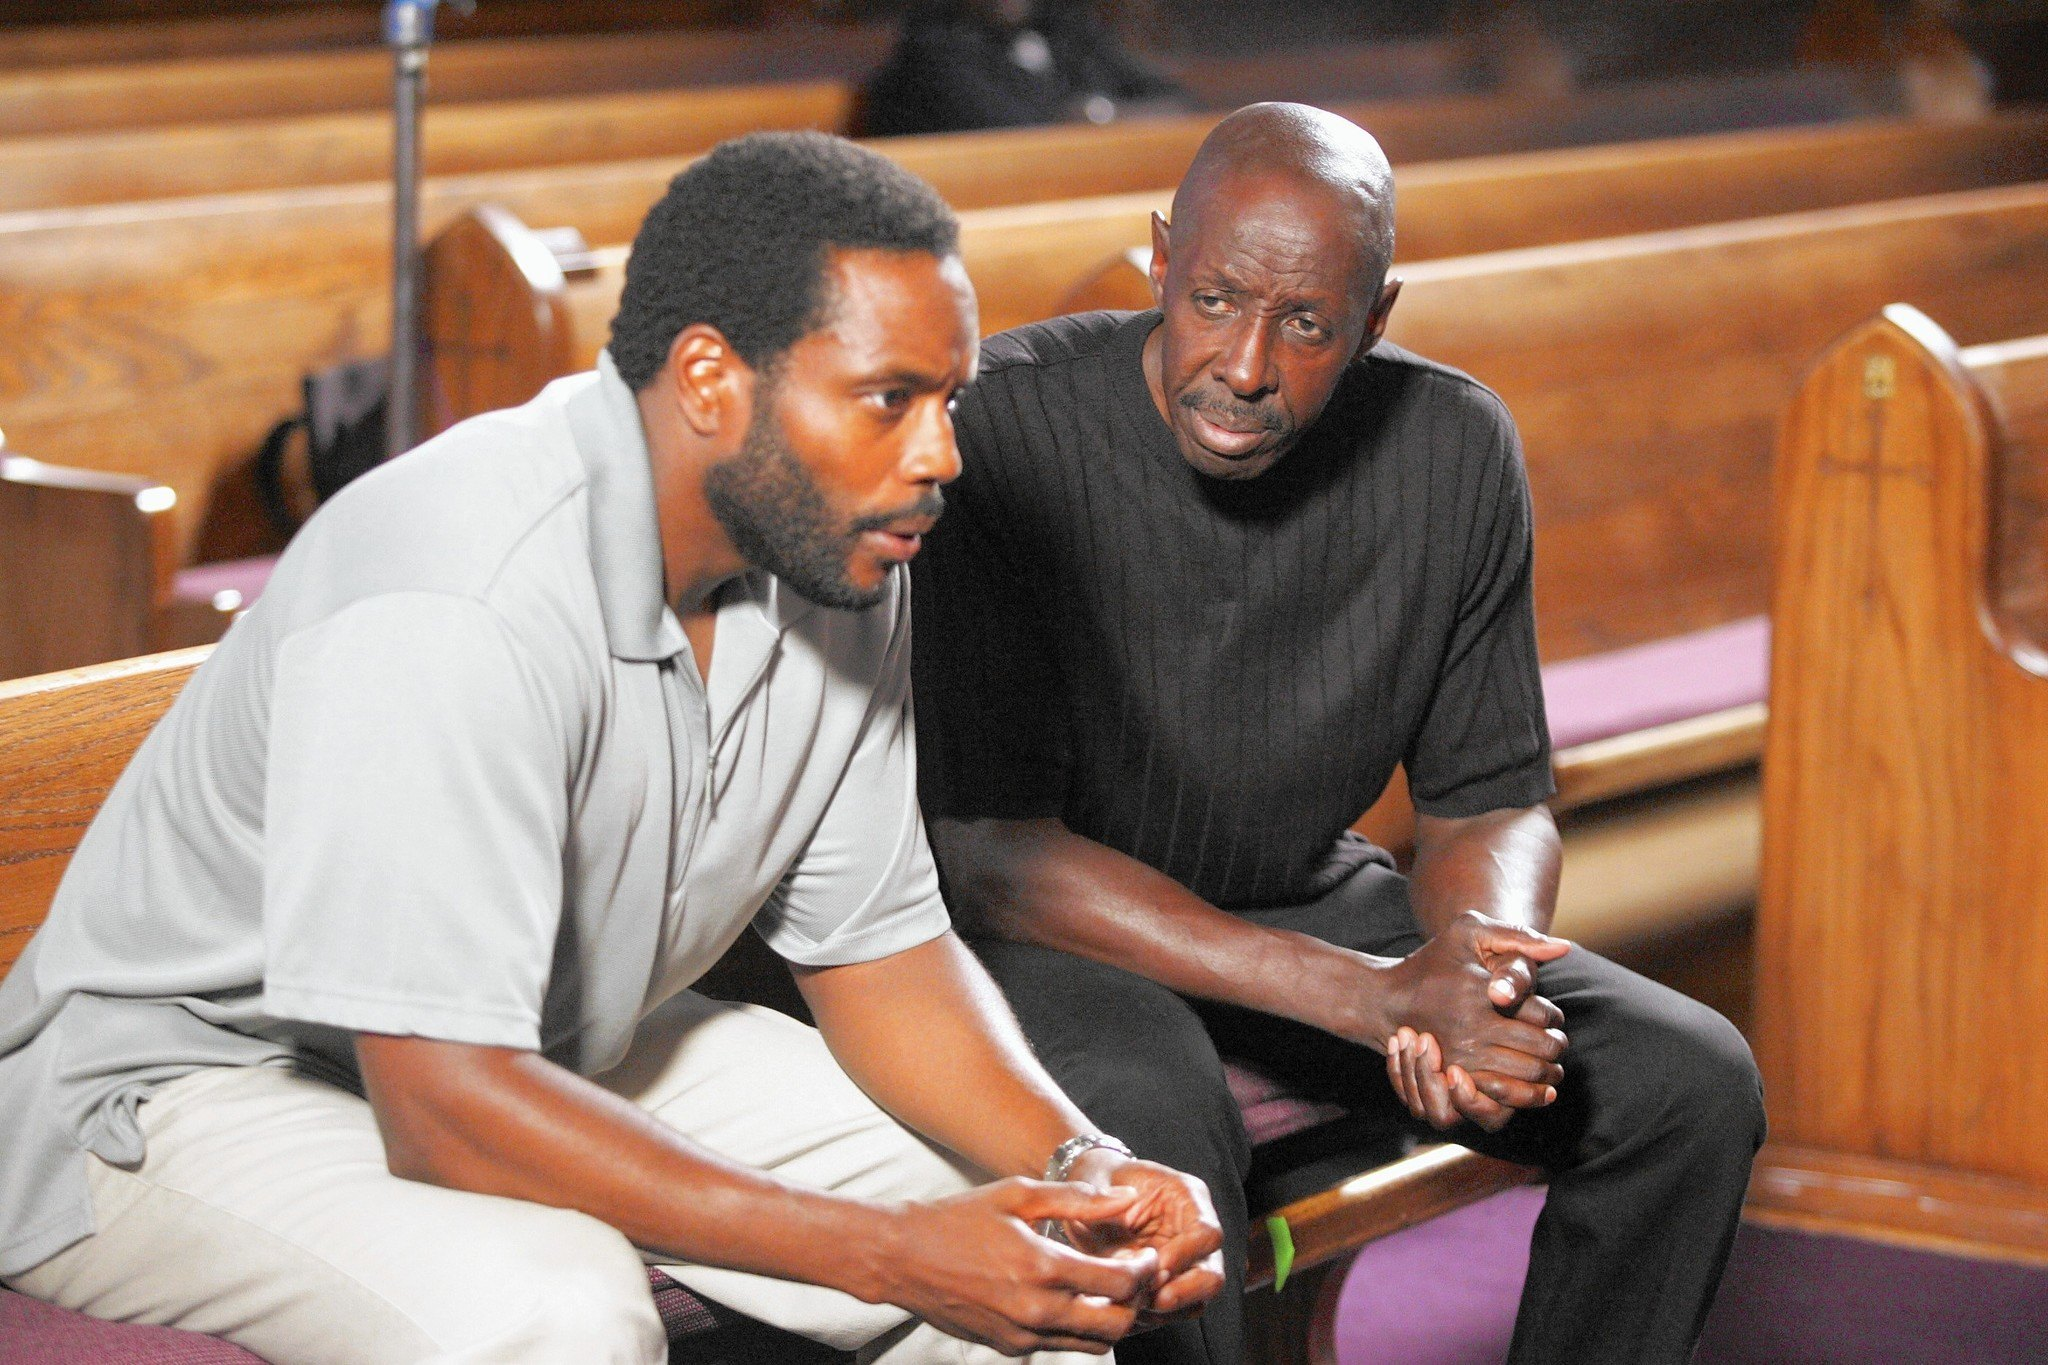 bs ed simon williams 20151212 12 Things You Didn't Know About 'The Wire'